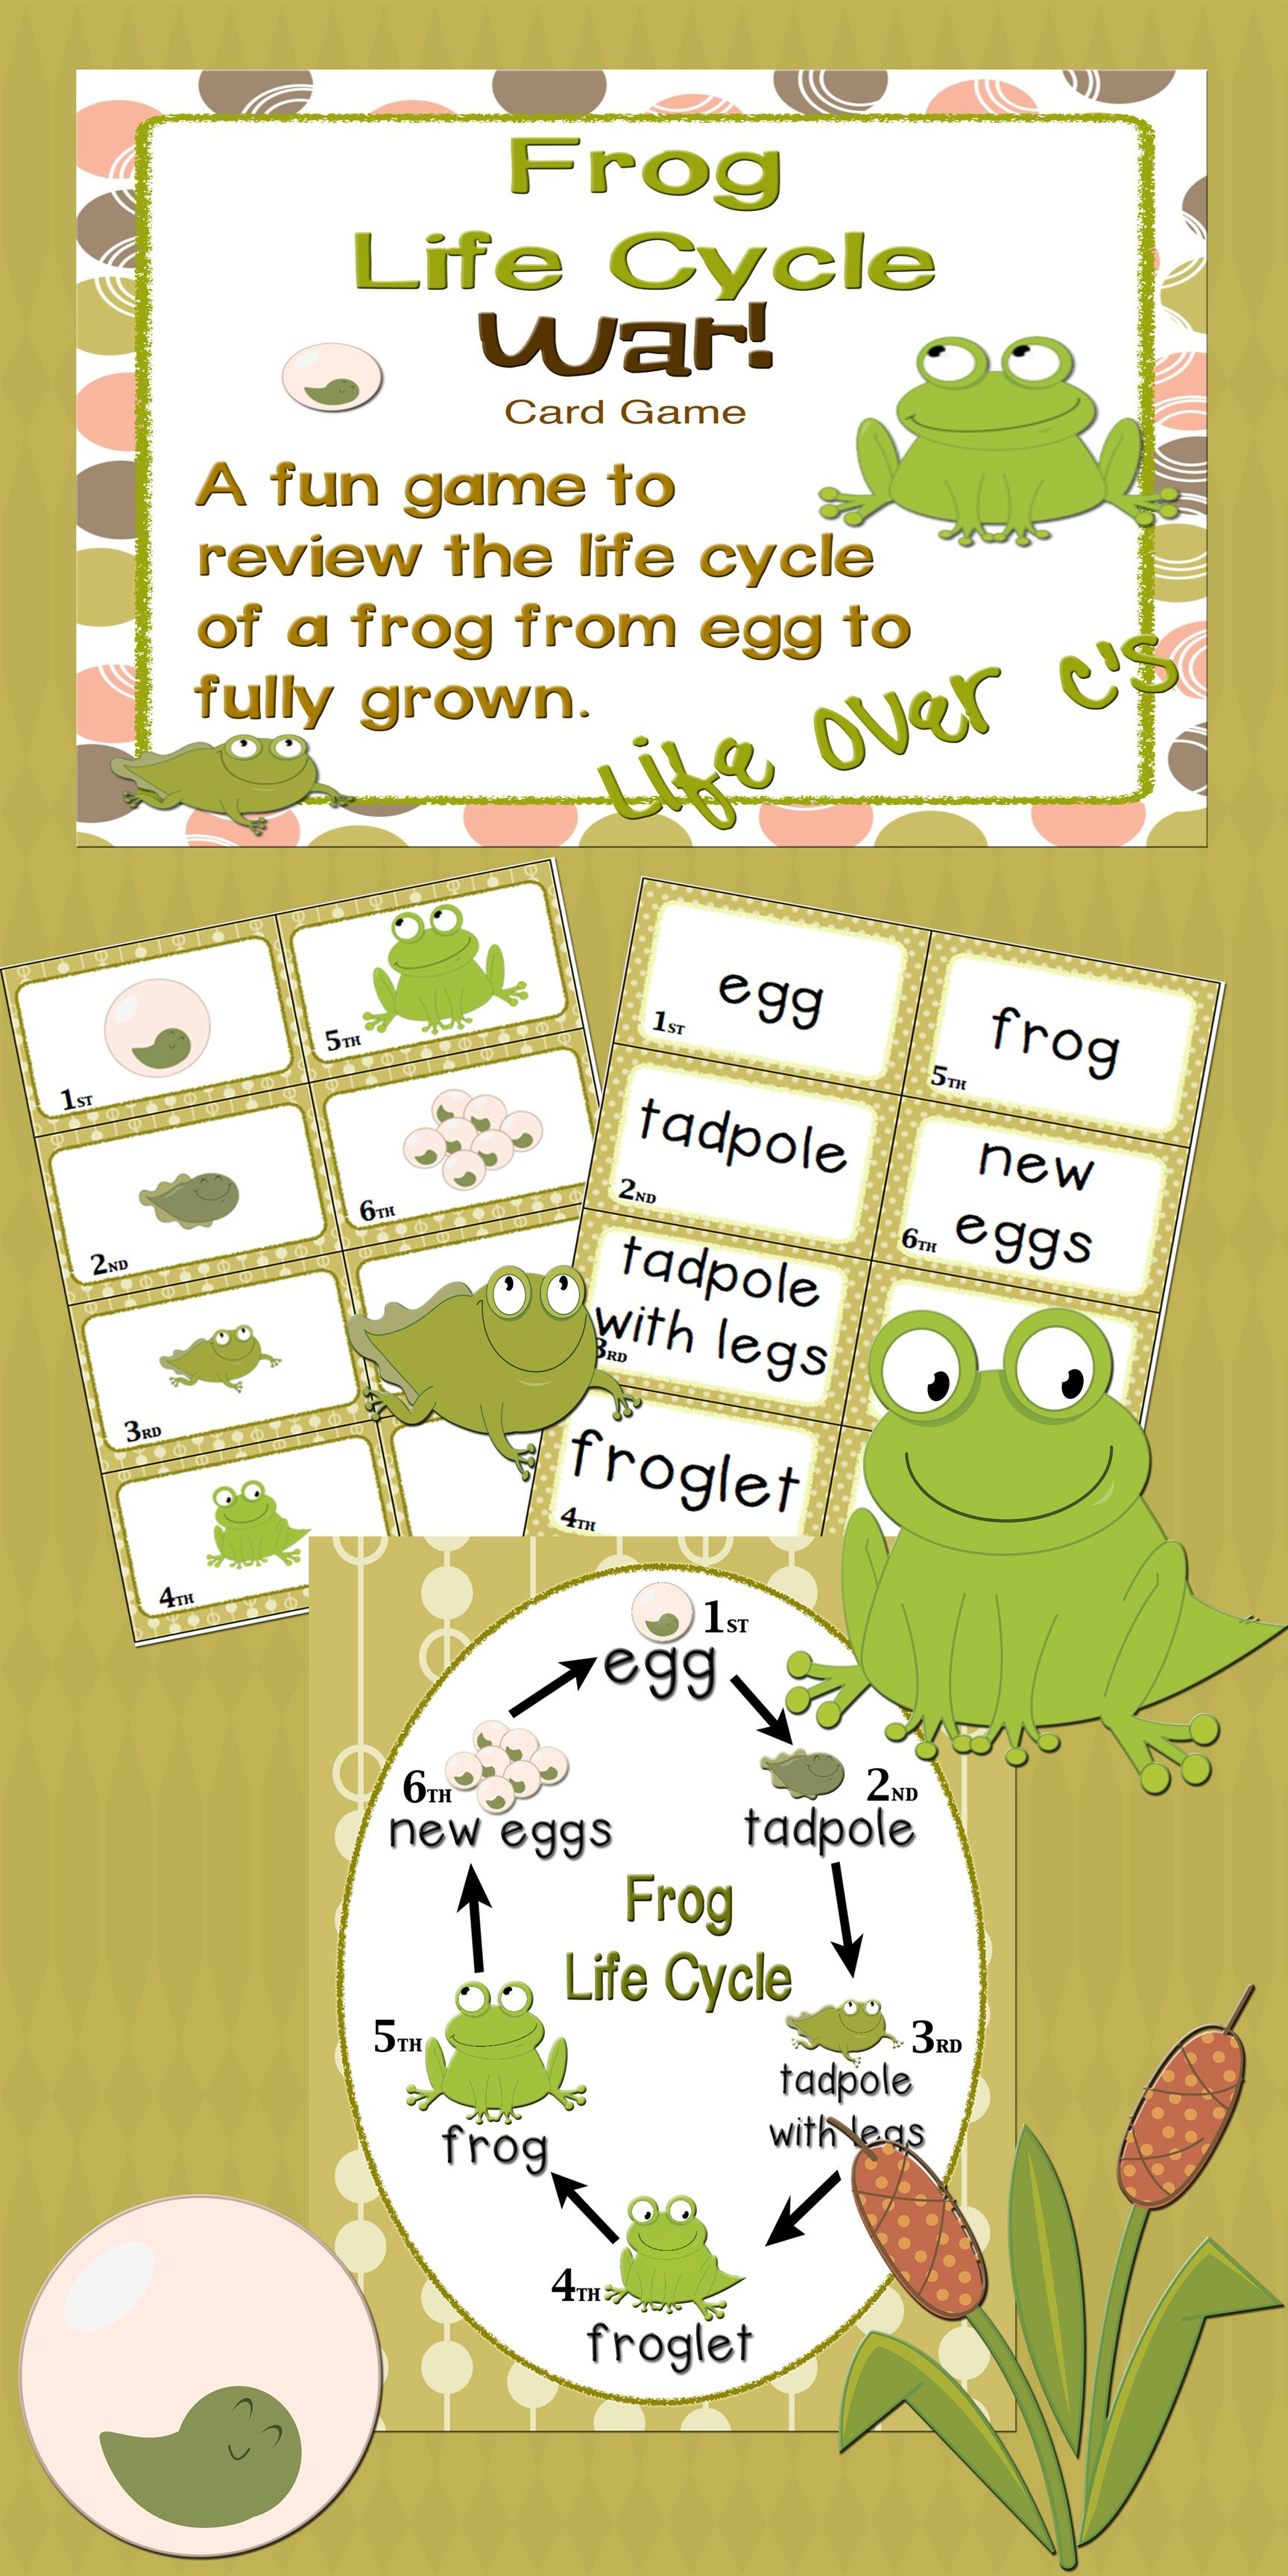 Sequencing With Frog Life Cycle War Card Game Science